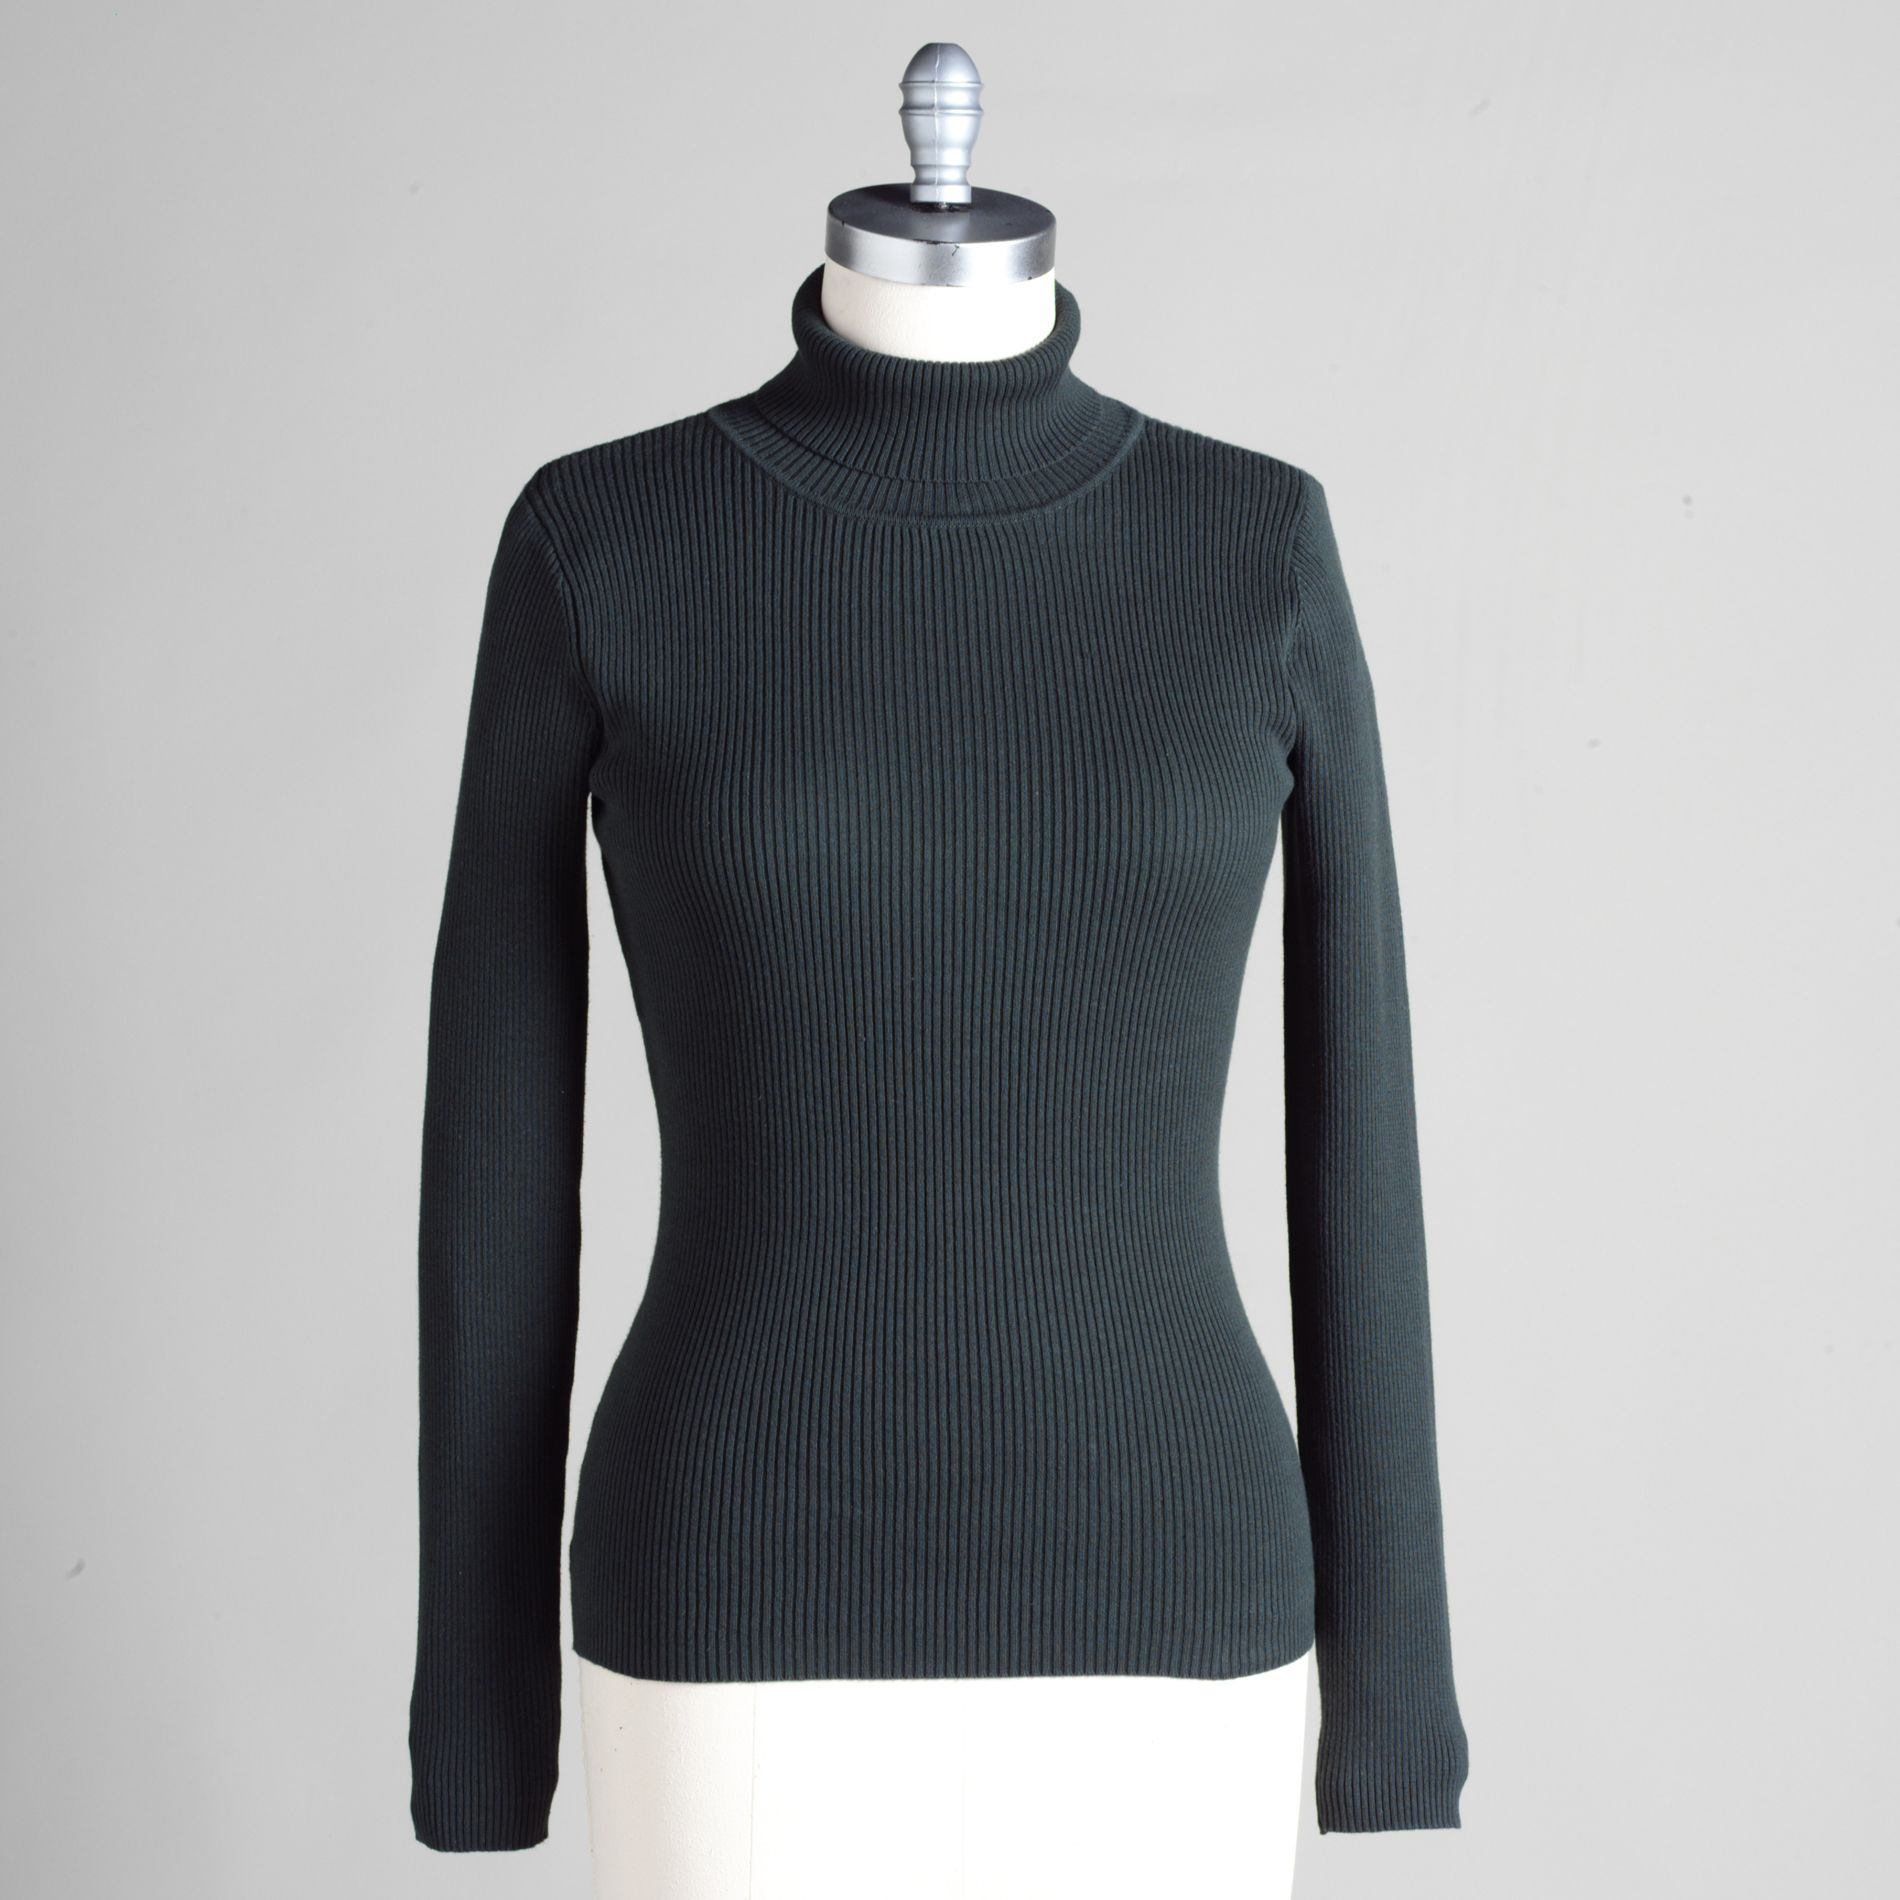 Basic Editions Women' 100 Cotton Turtleneck Rib Solid Sweater